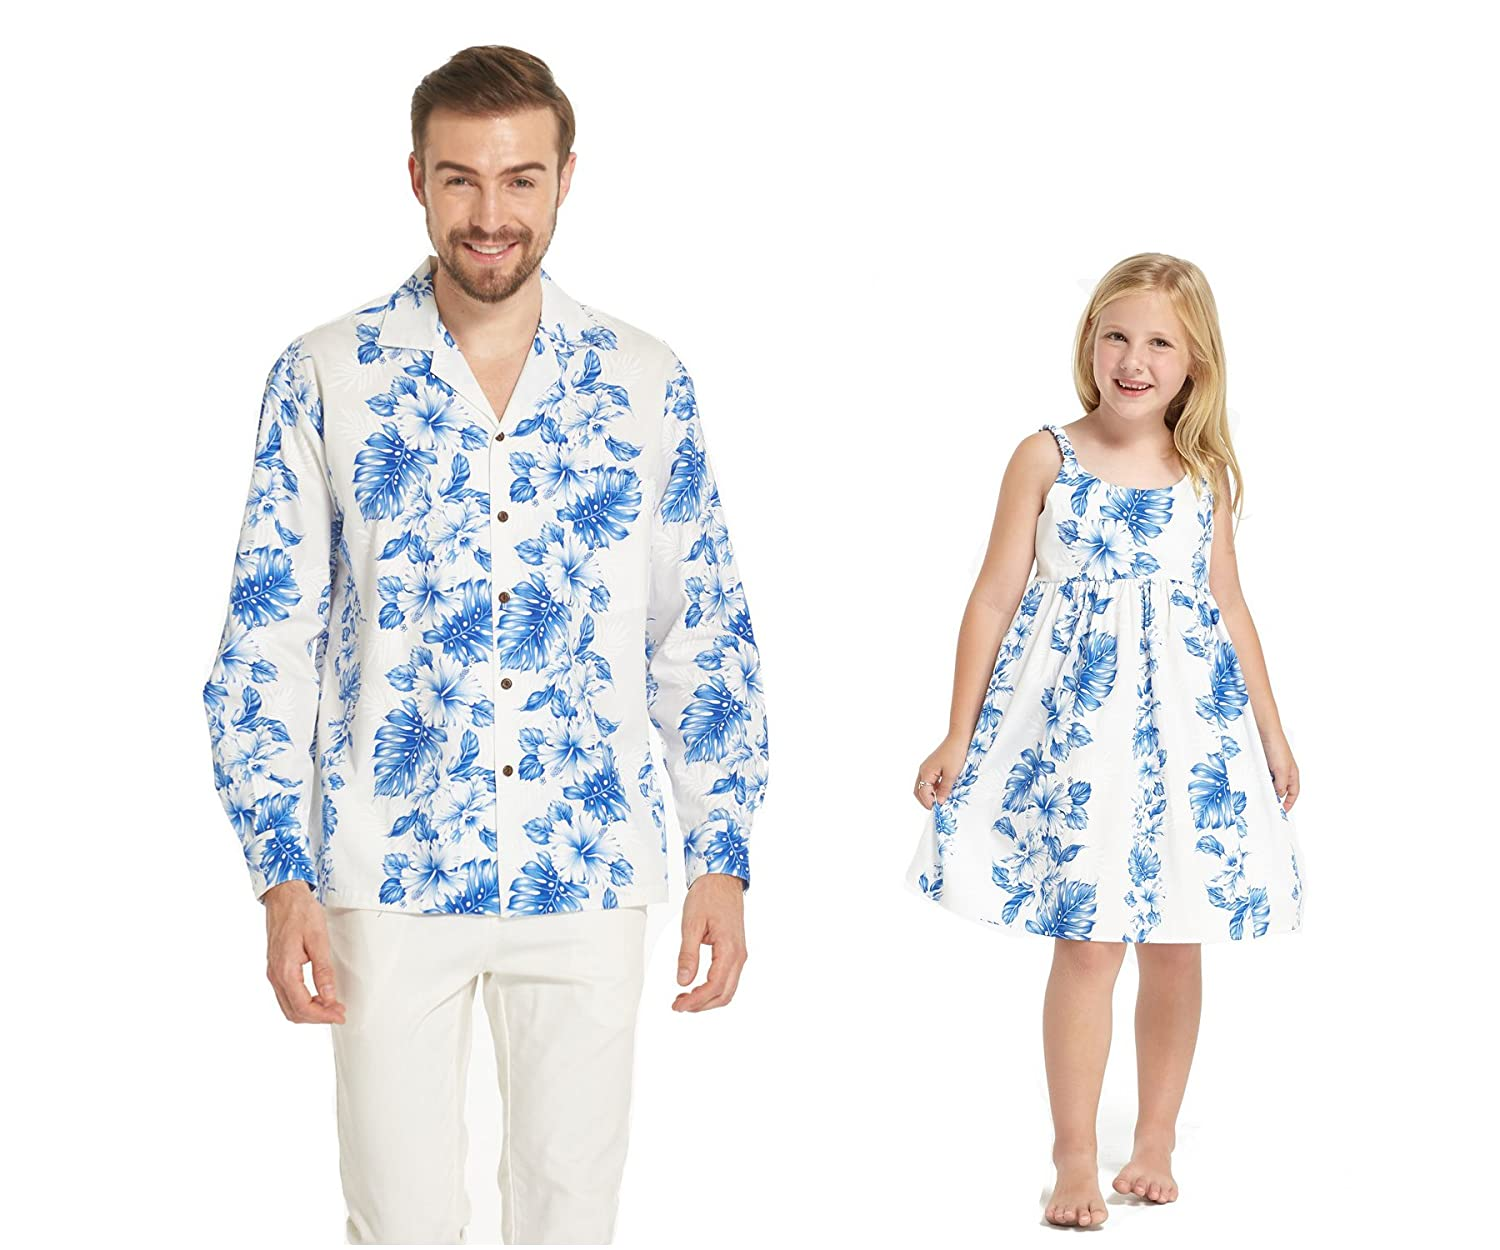 Made in Hawaii Matching Father Daughter Long Sleeve Shirt Elastic Strap Dress in Blue Floral in White at Amazon Mens Clothing store: